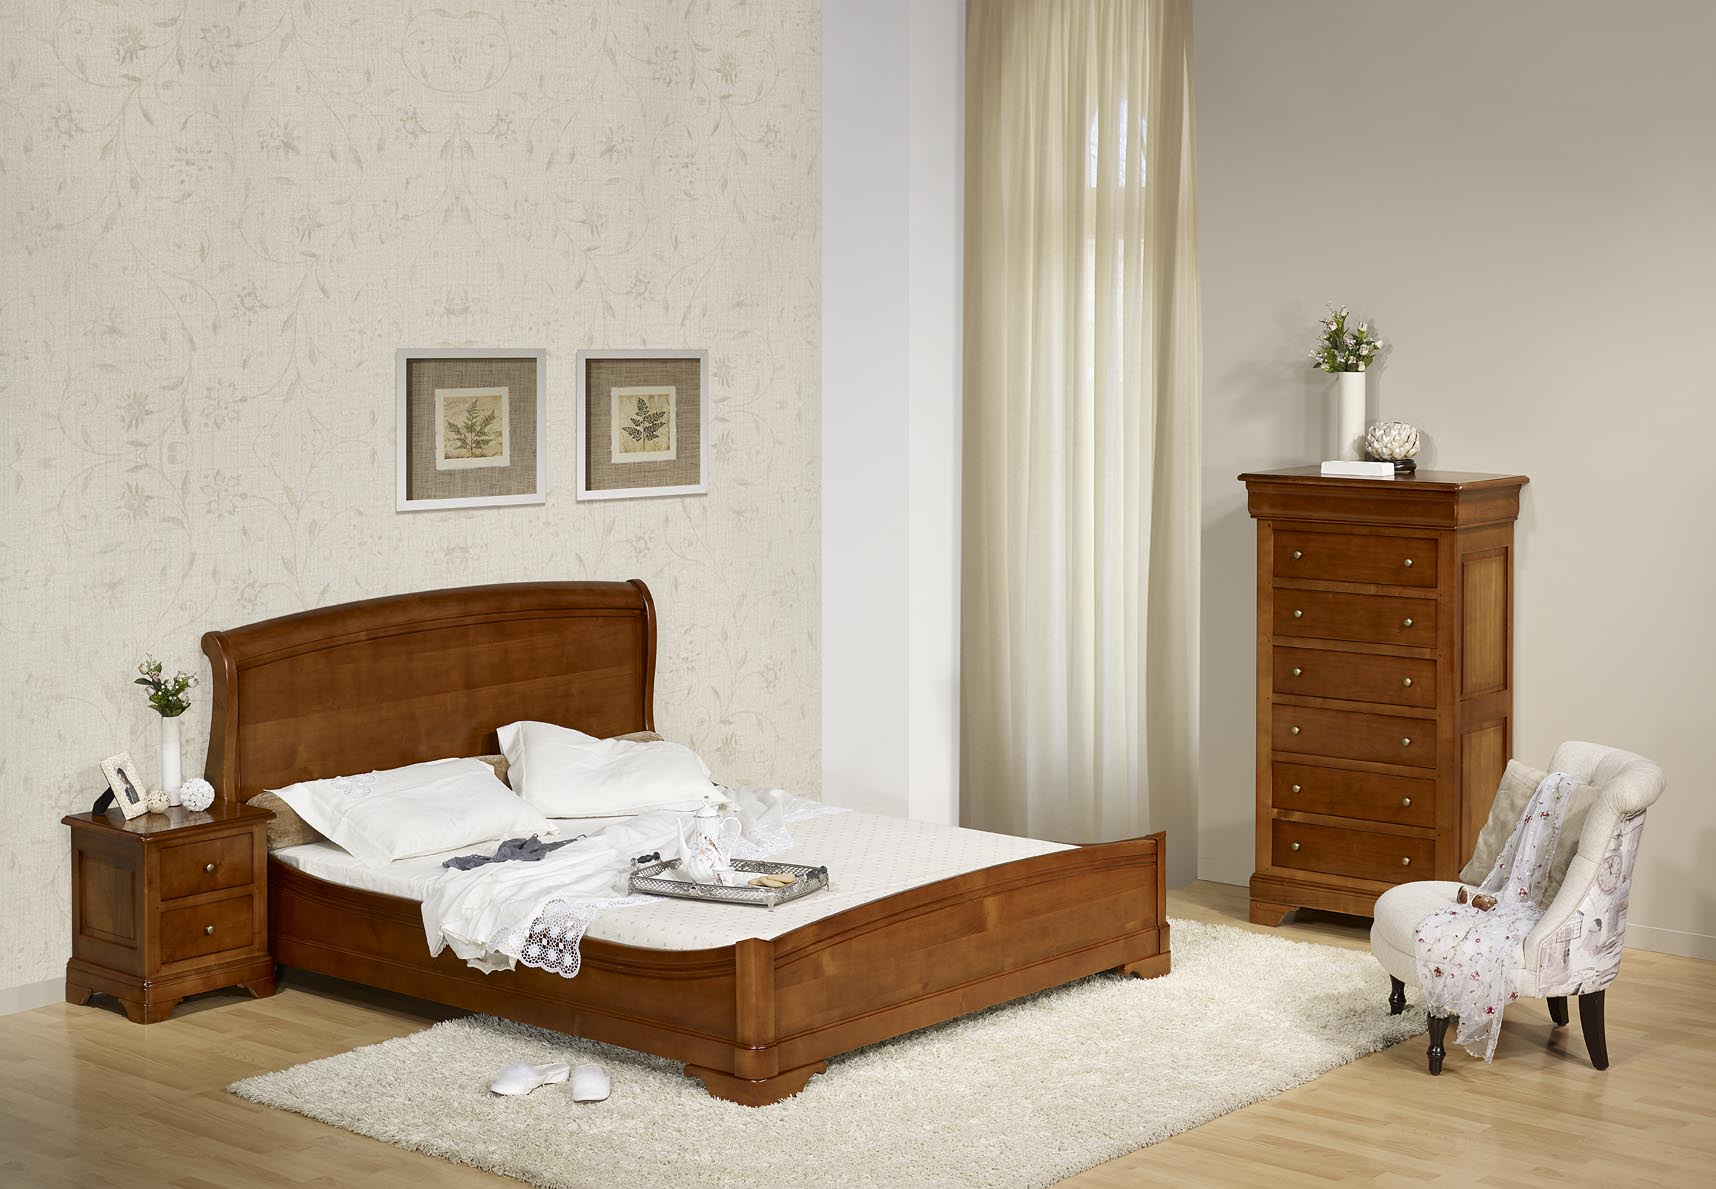 lit 140x190 en merisier massif de style louis philippe. Black Bedroom Furniture Sets. Home Design Ideas